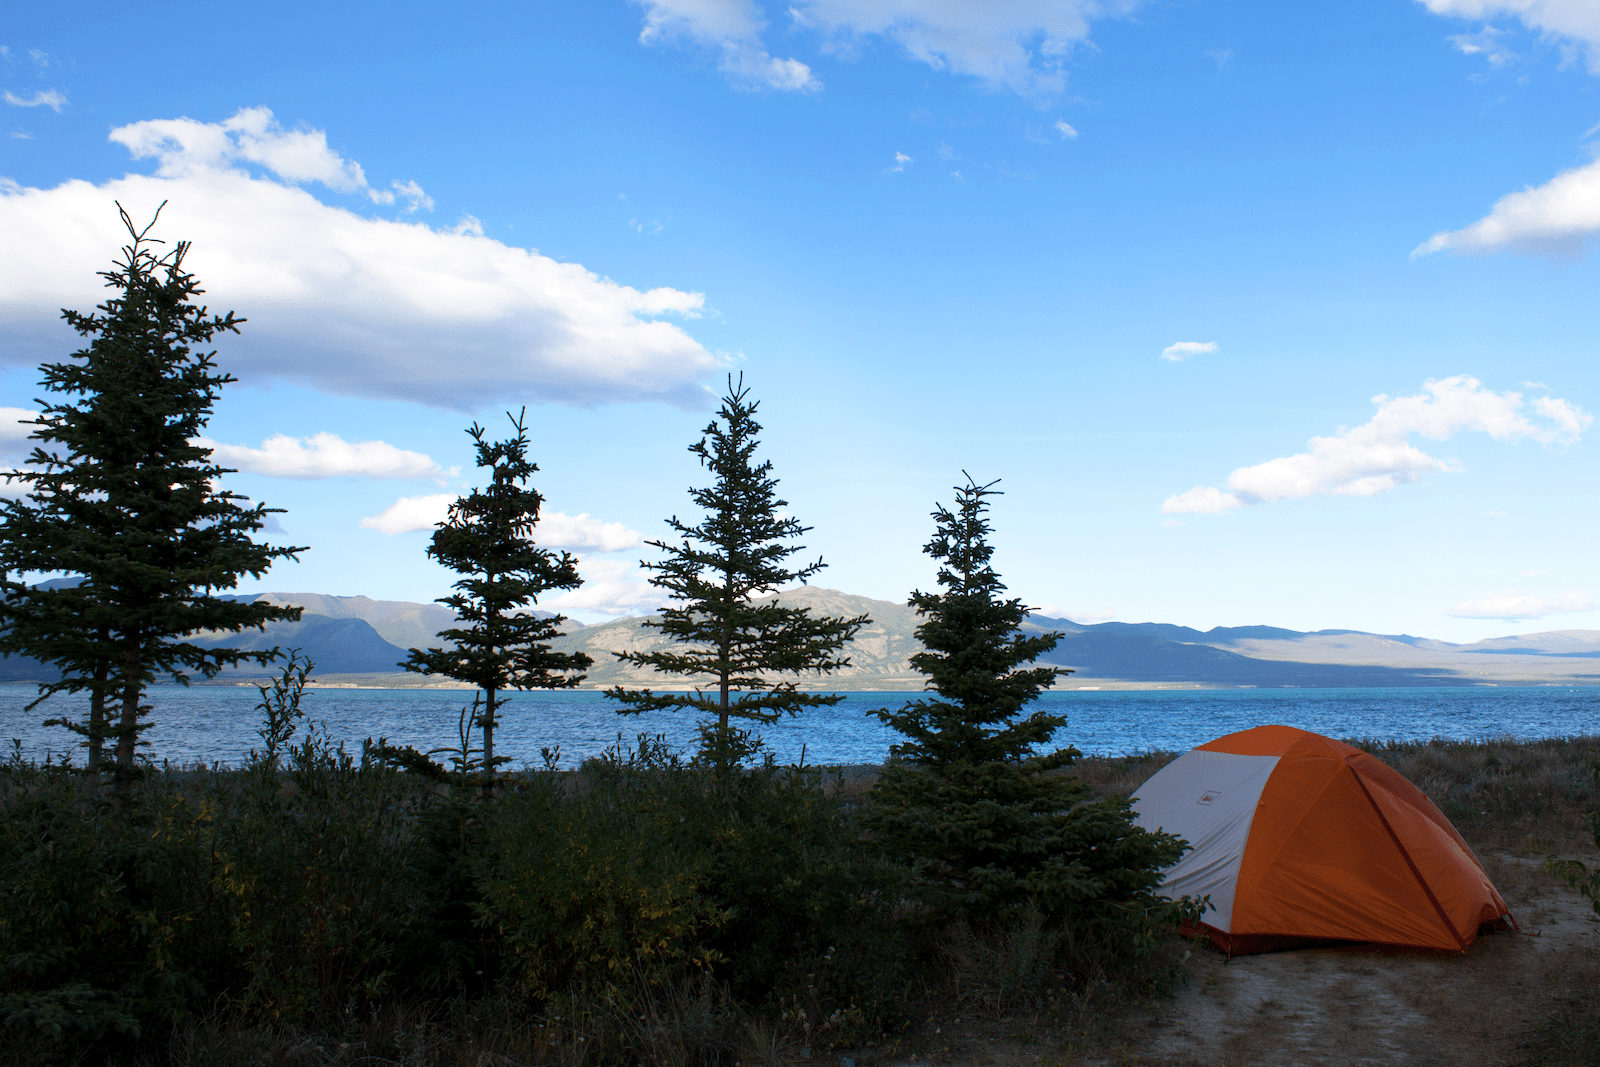 Camping amongst trees in front of Kluane Lake, Yukon, Canada